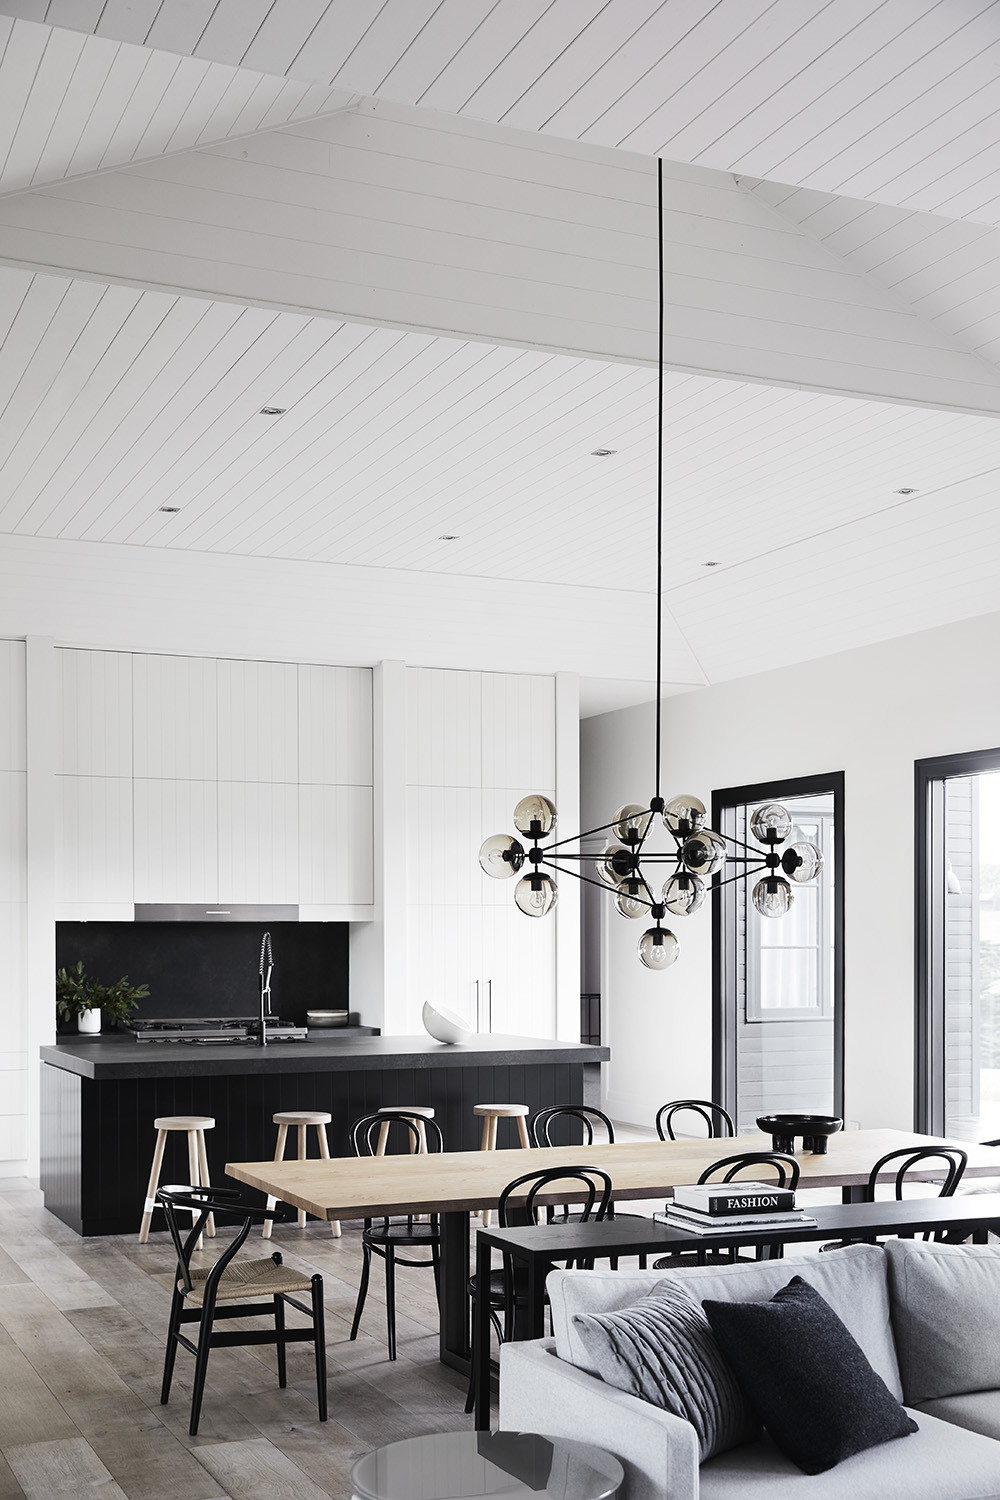 A modern farmhouse interior where the dining room is positioned between the living room and kitchen, all of which are open plan.